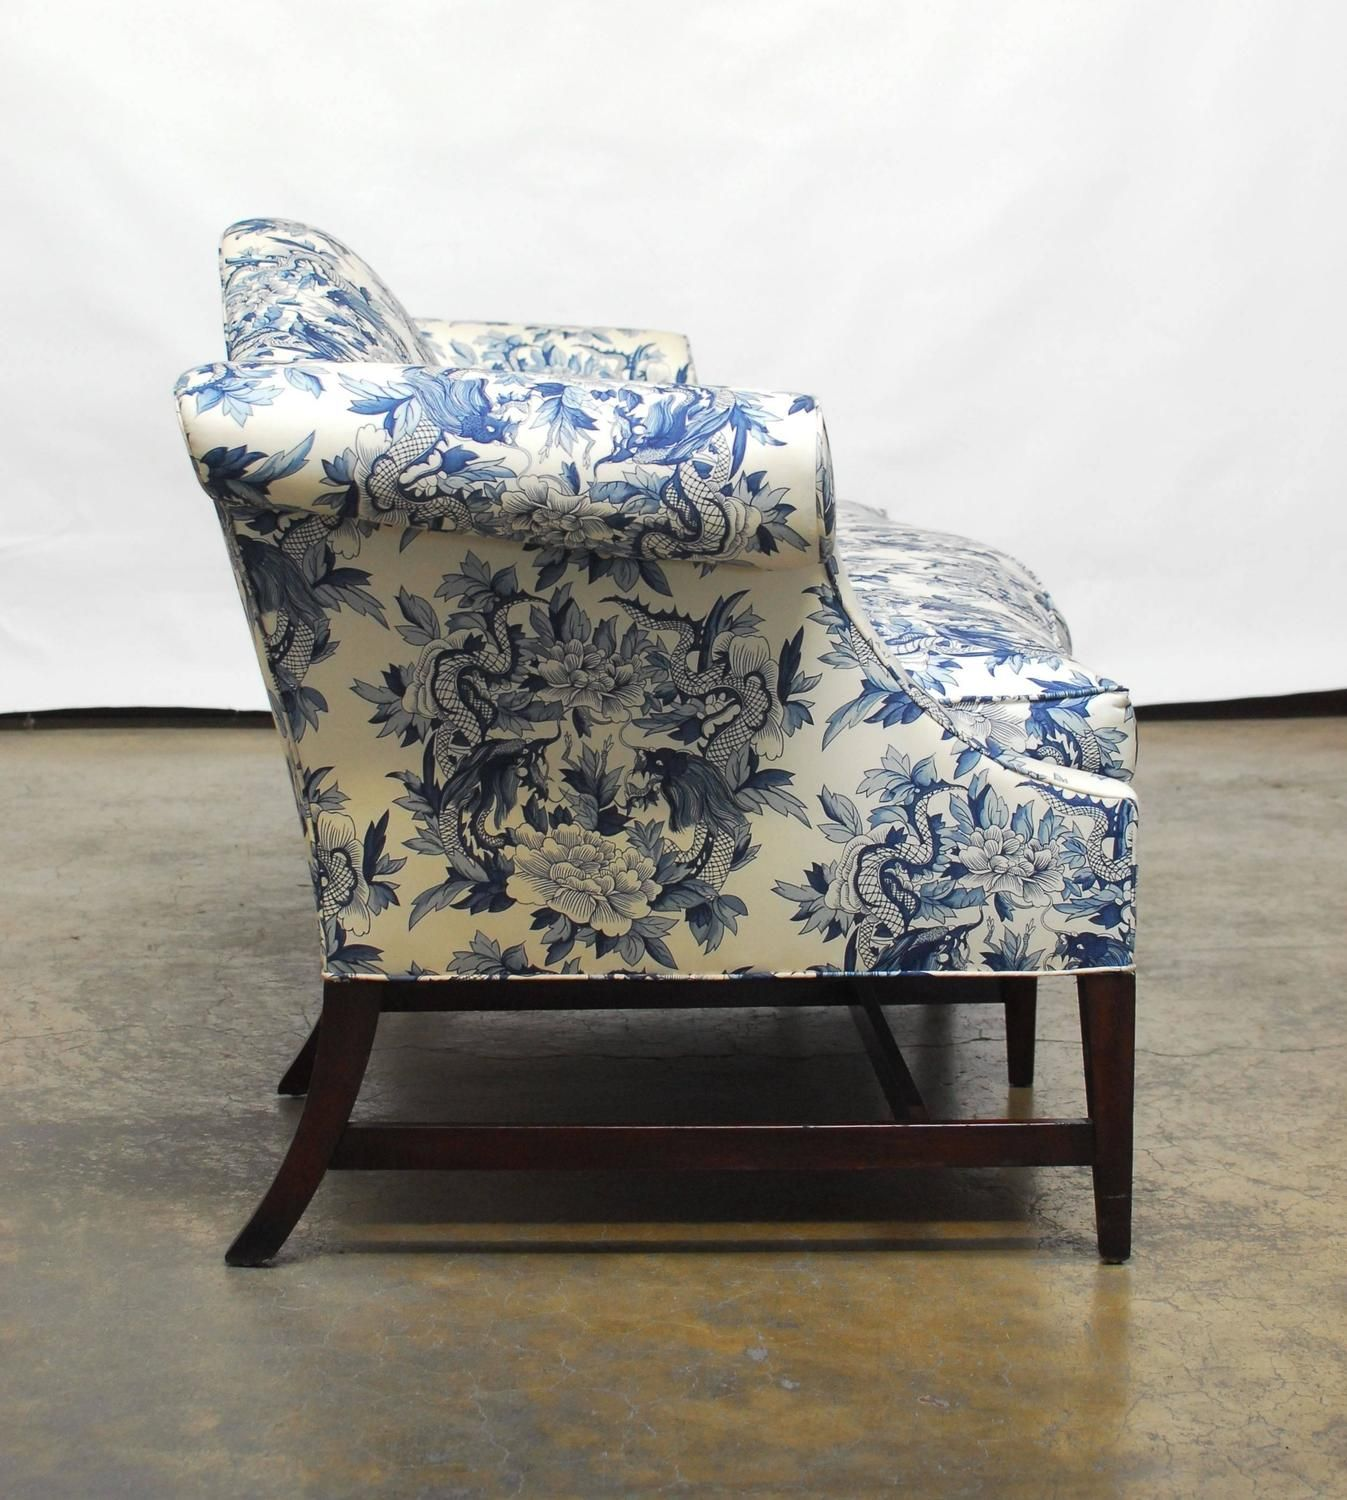 Chippendale Style Camelback Sofa With Chinoiserie Dragon Upholstery